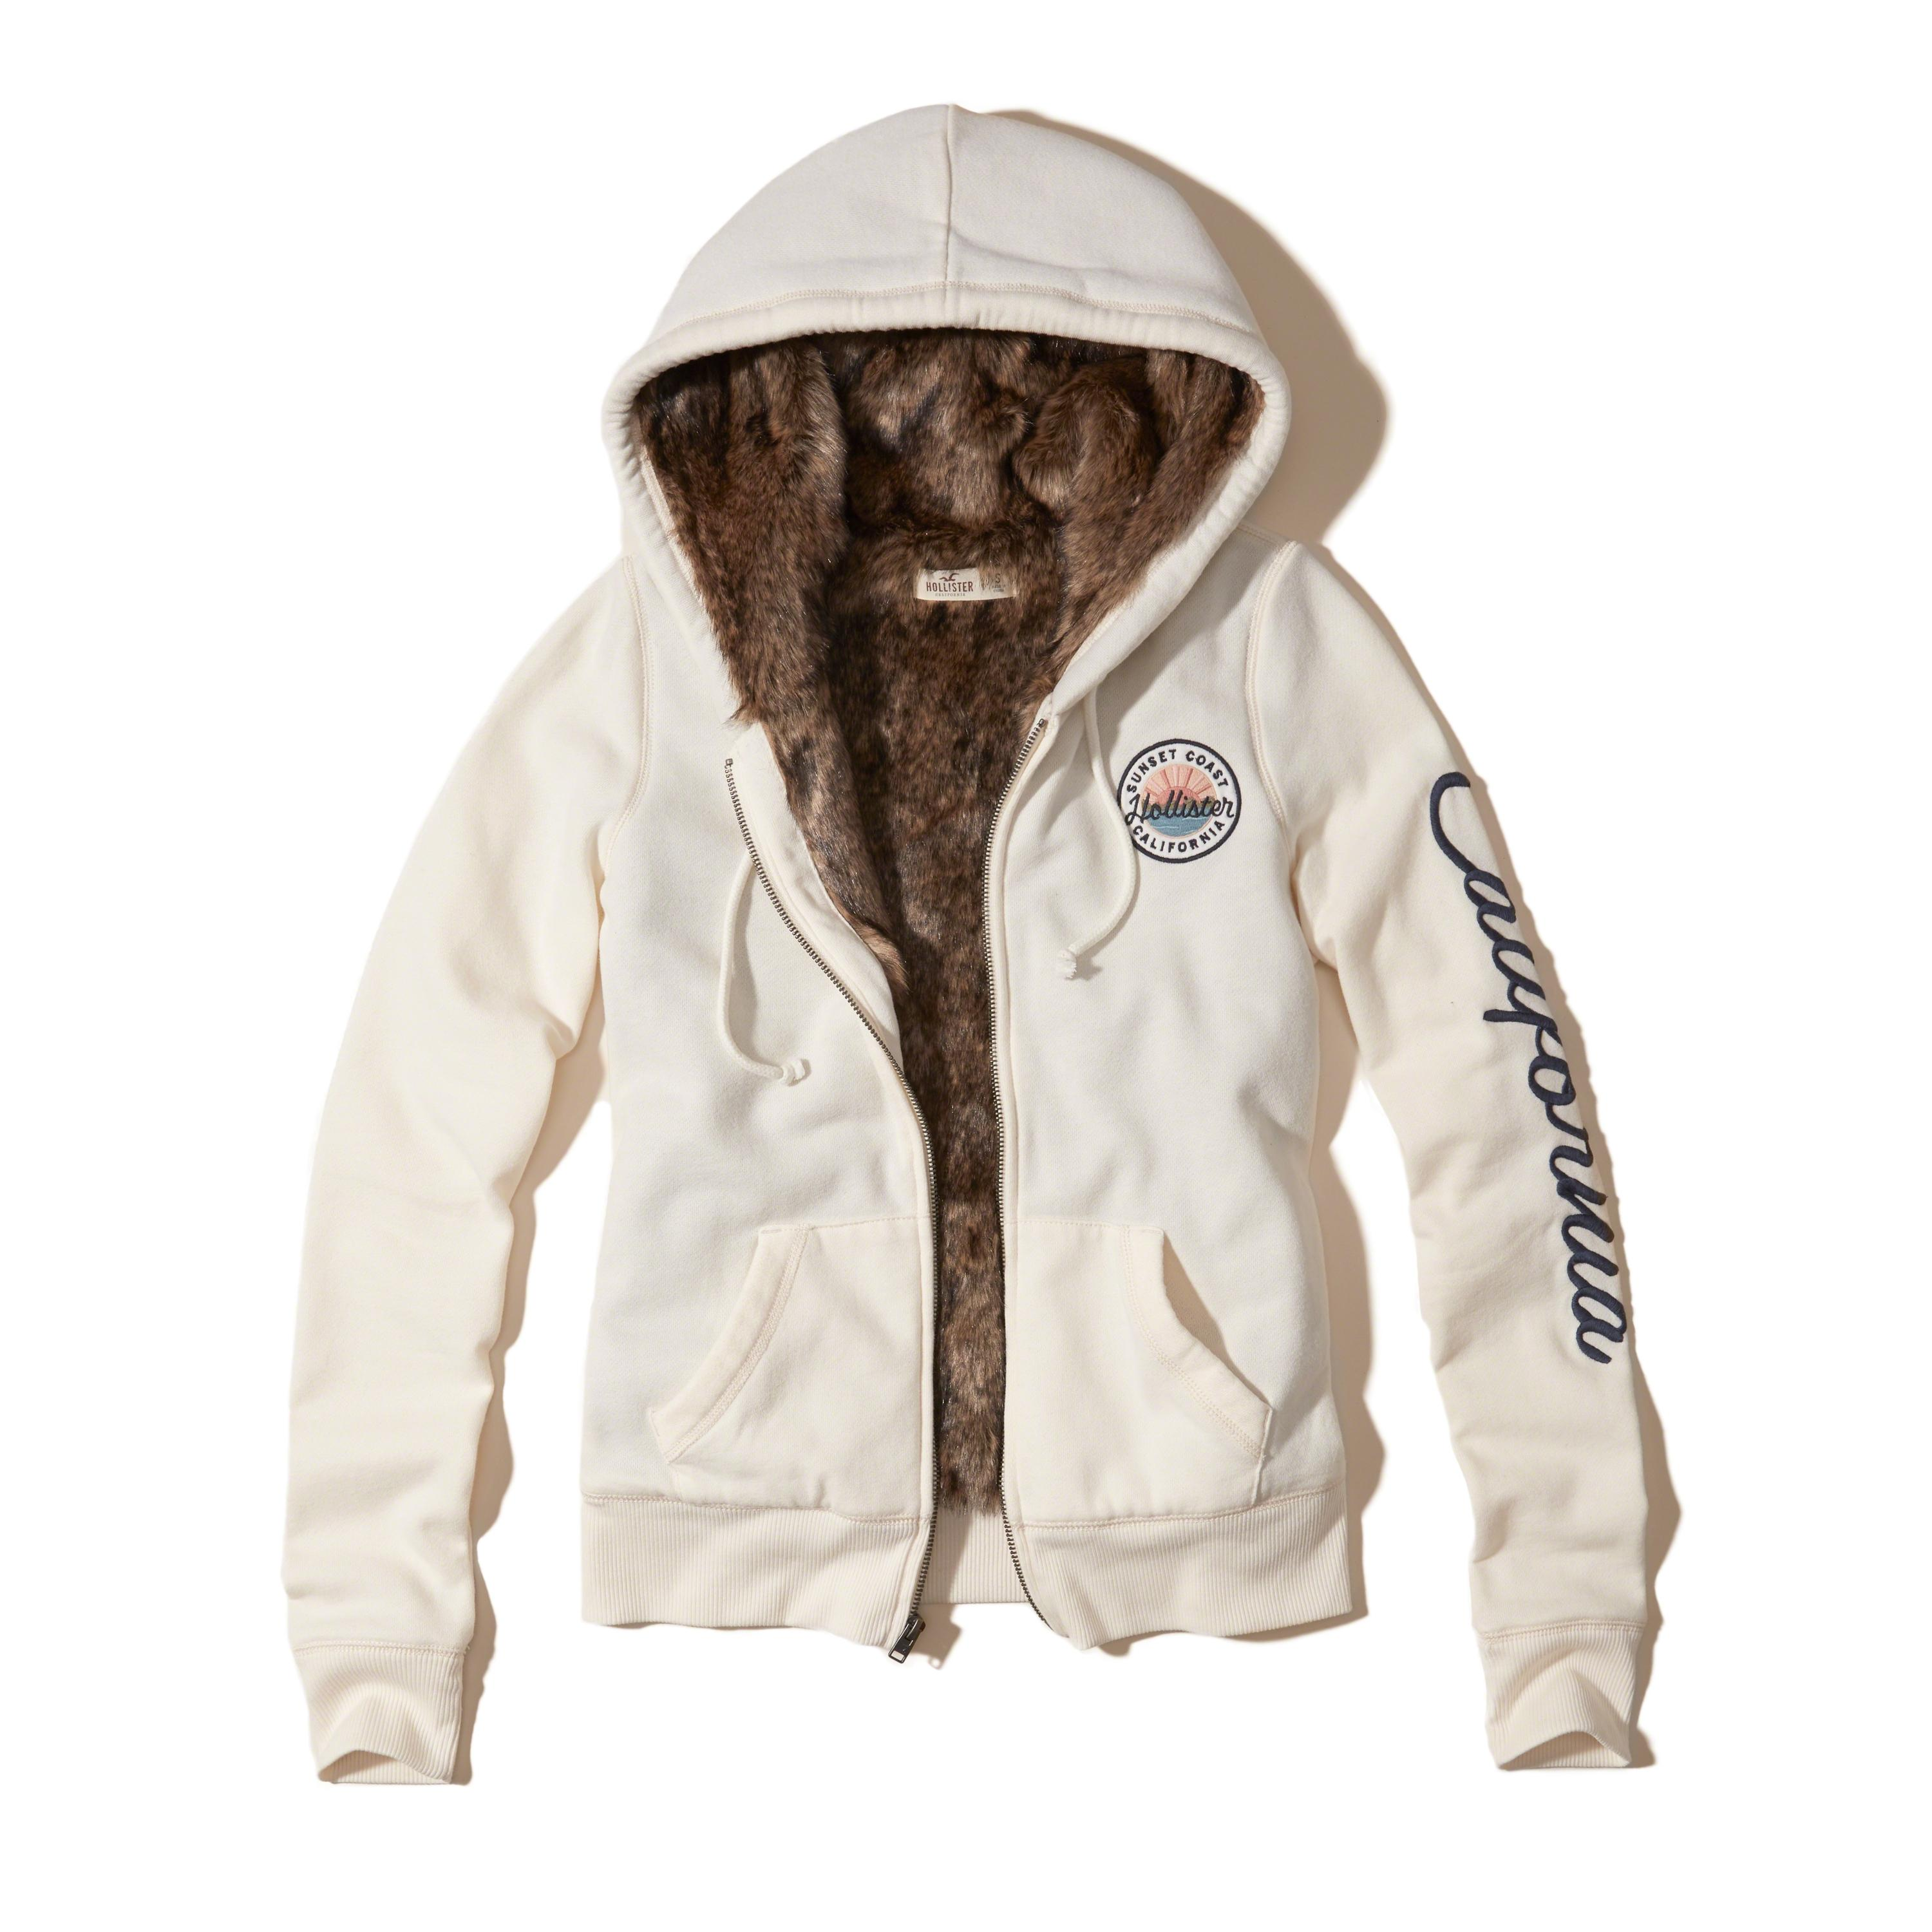 Lyst - Hollister Faux Fur Lined Graphic Hoodie In White-5920